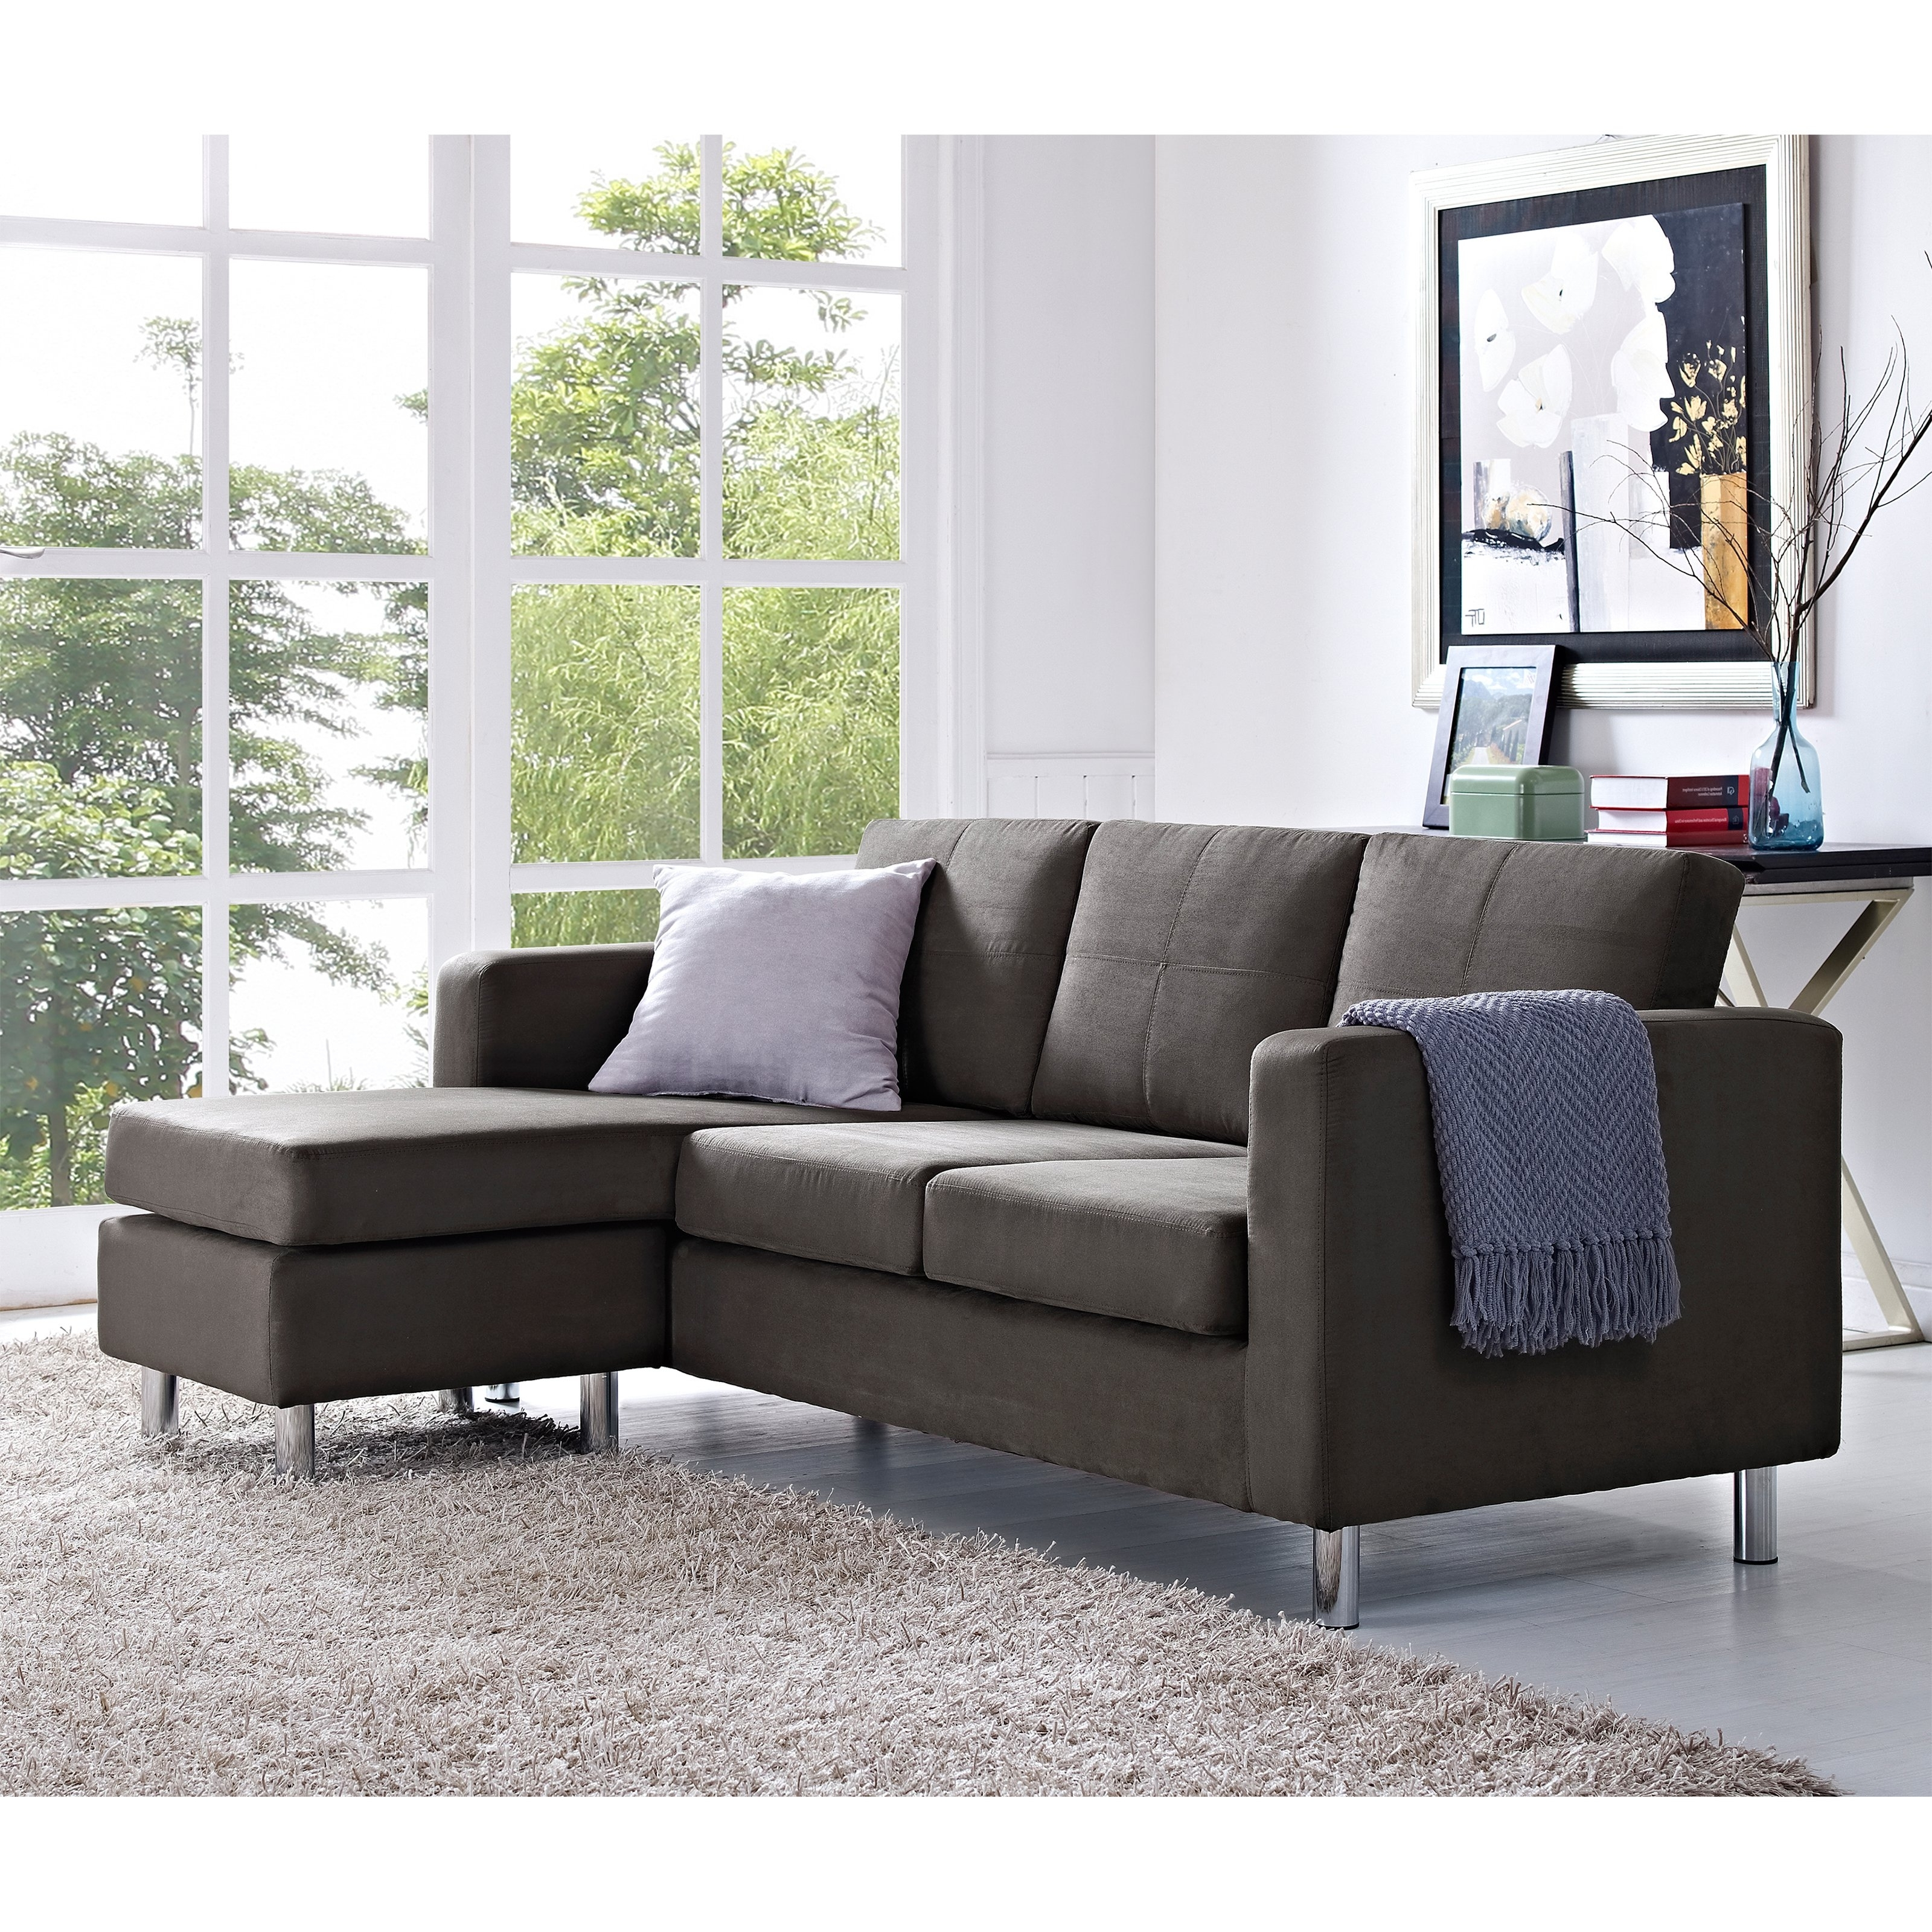 Trendy Dorel Living Small Spaces Configurable Sectional Sofa (View 13 of 15)